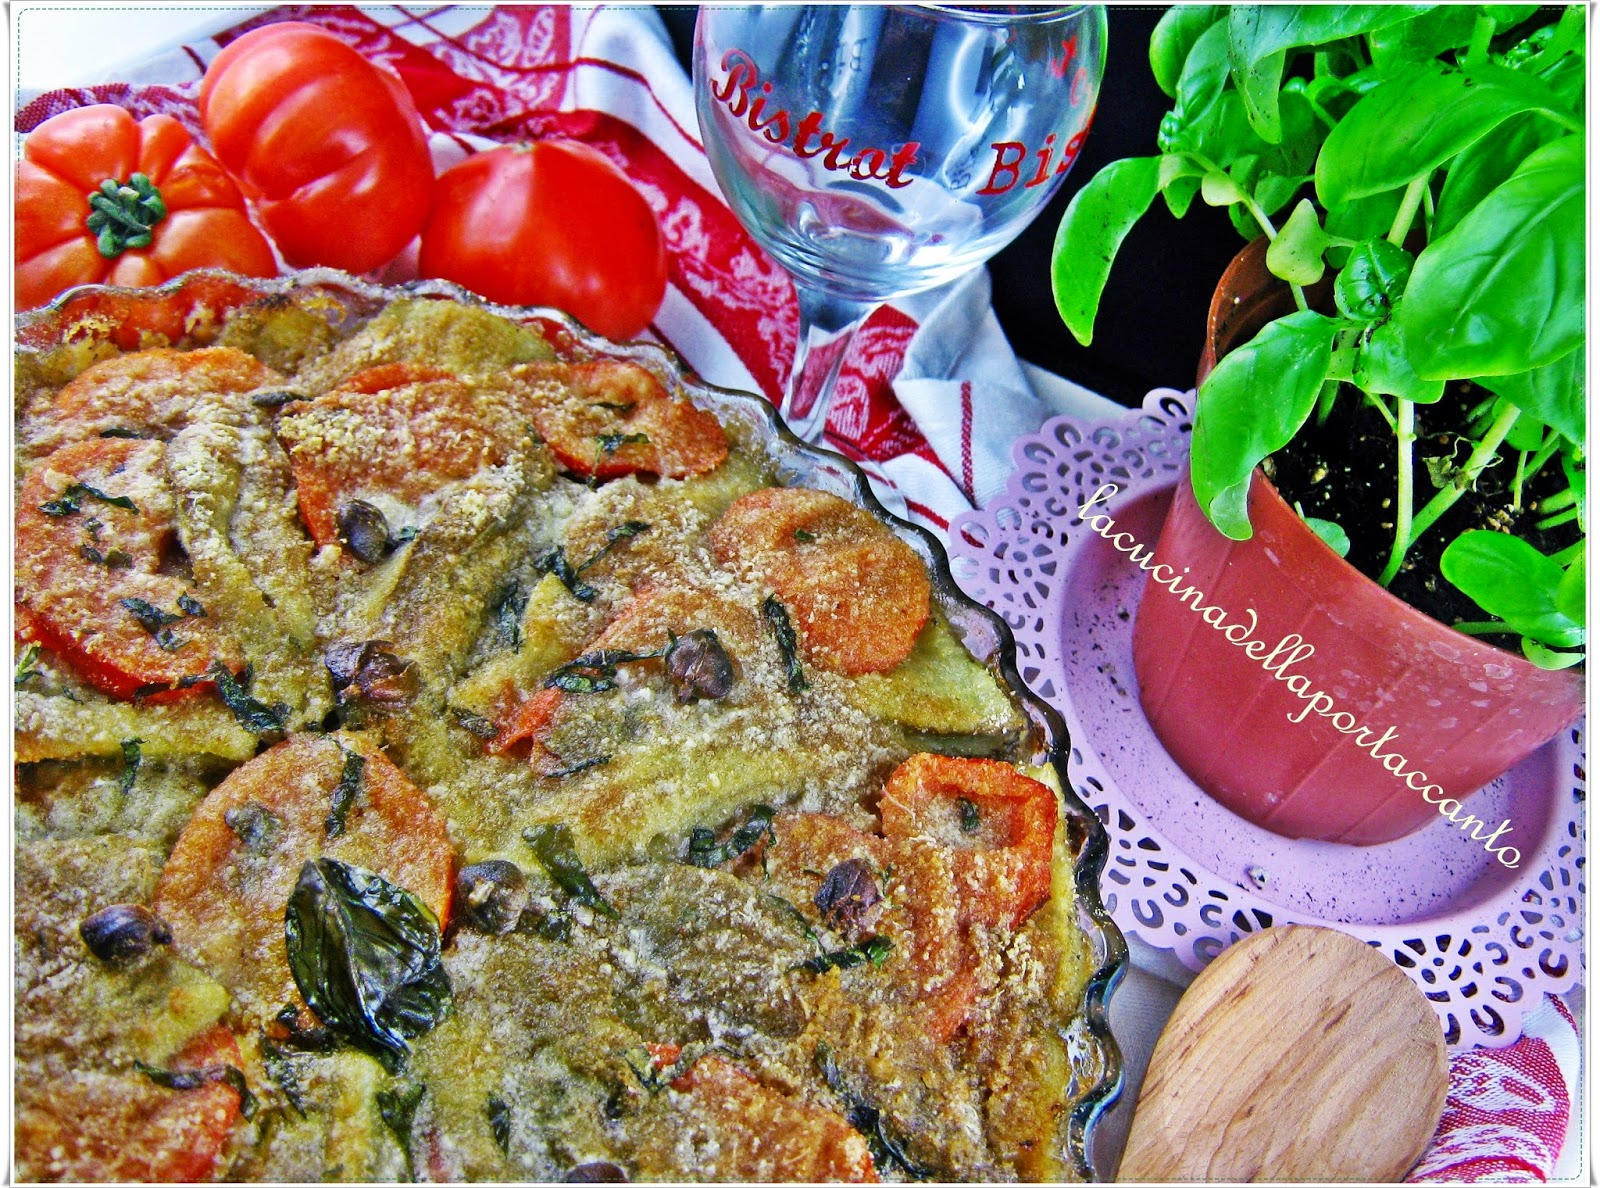 ... confit / Provencal baking dish confit of eggplant and tomatoes